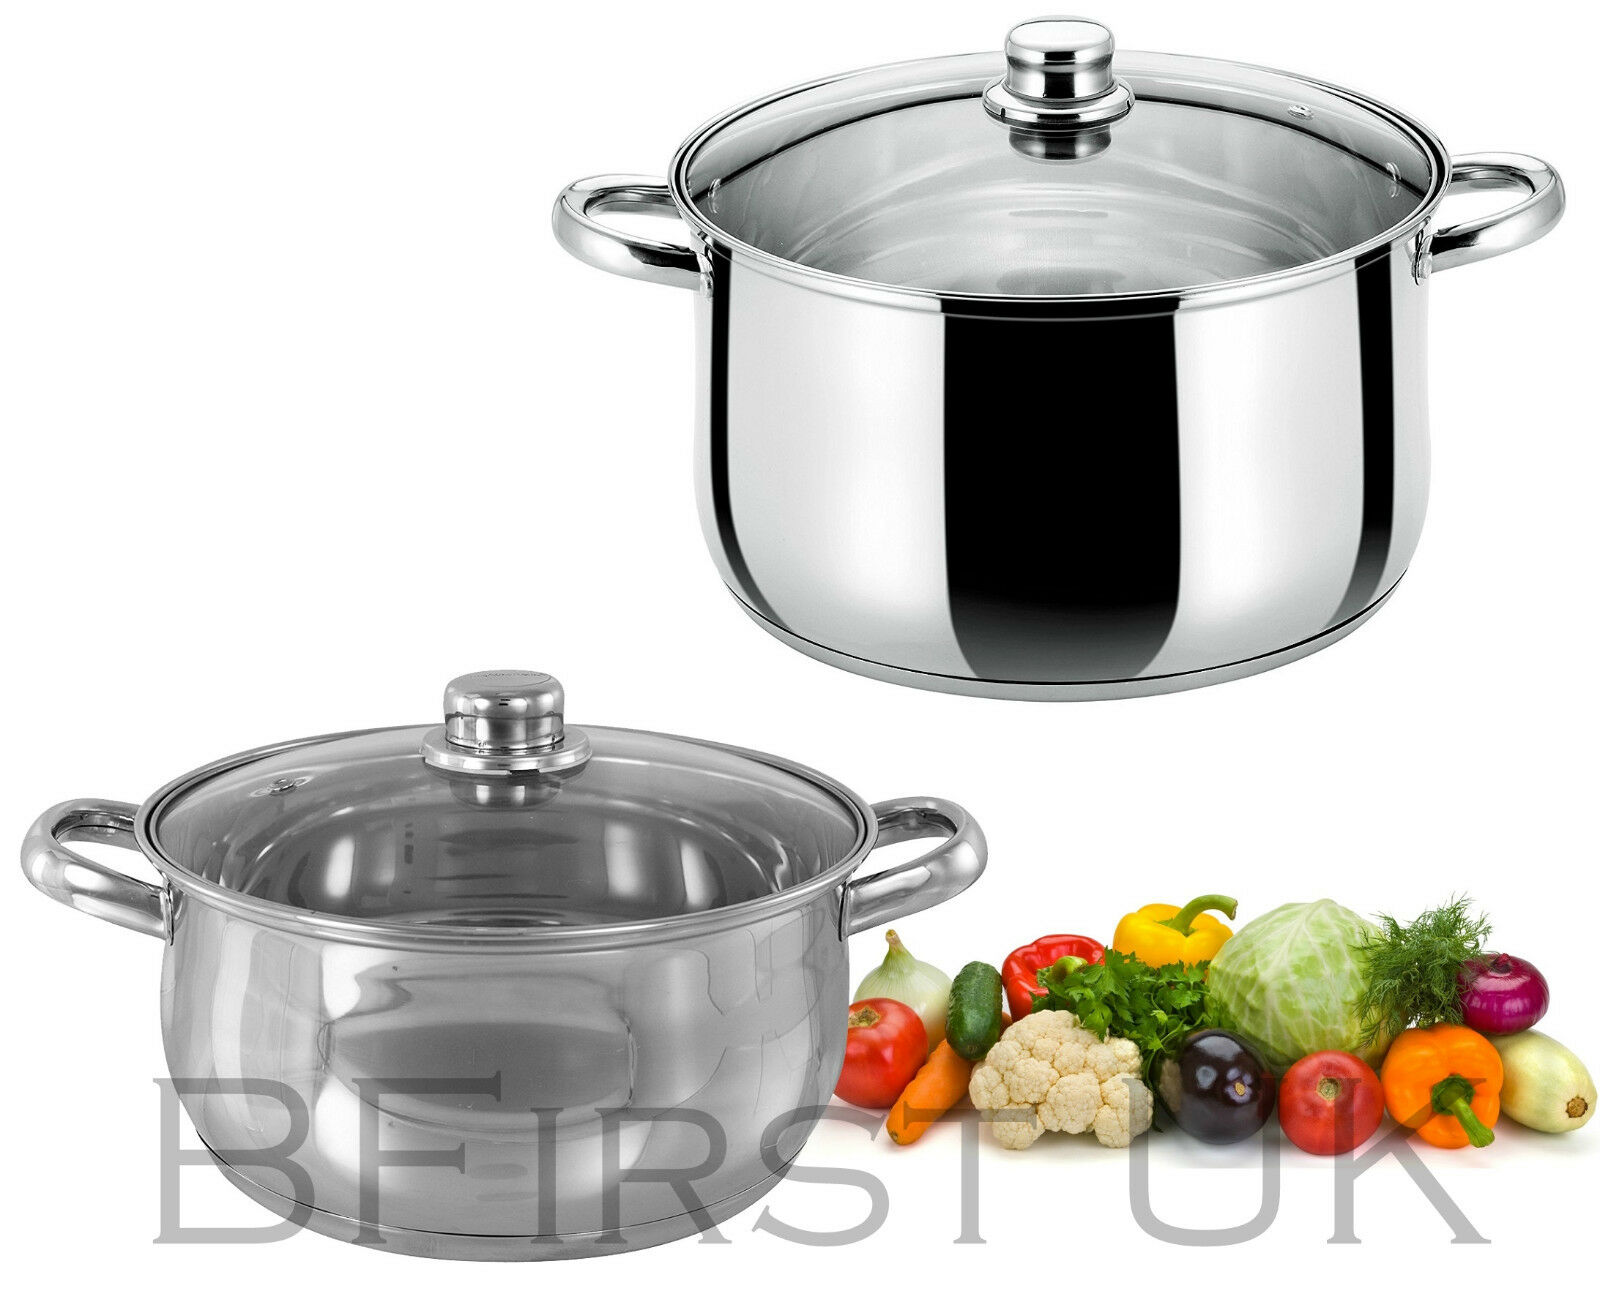 stainless steel induction base casserole dish stock soup. Black Bedroom Furniture Sets. Home Design Ideas